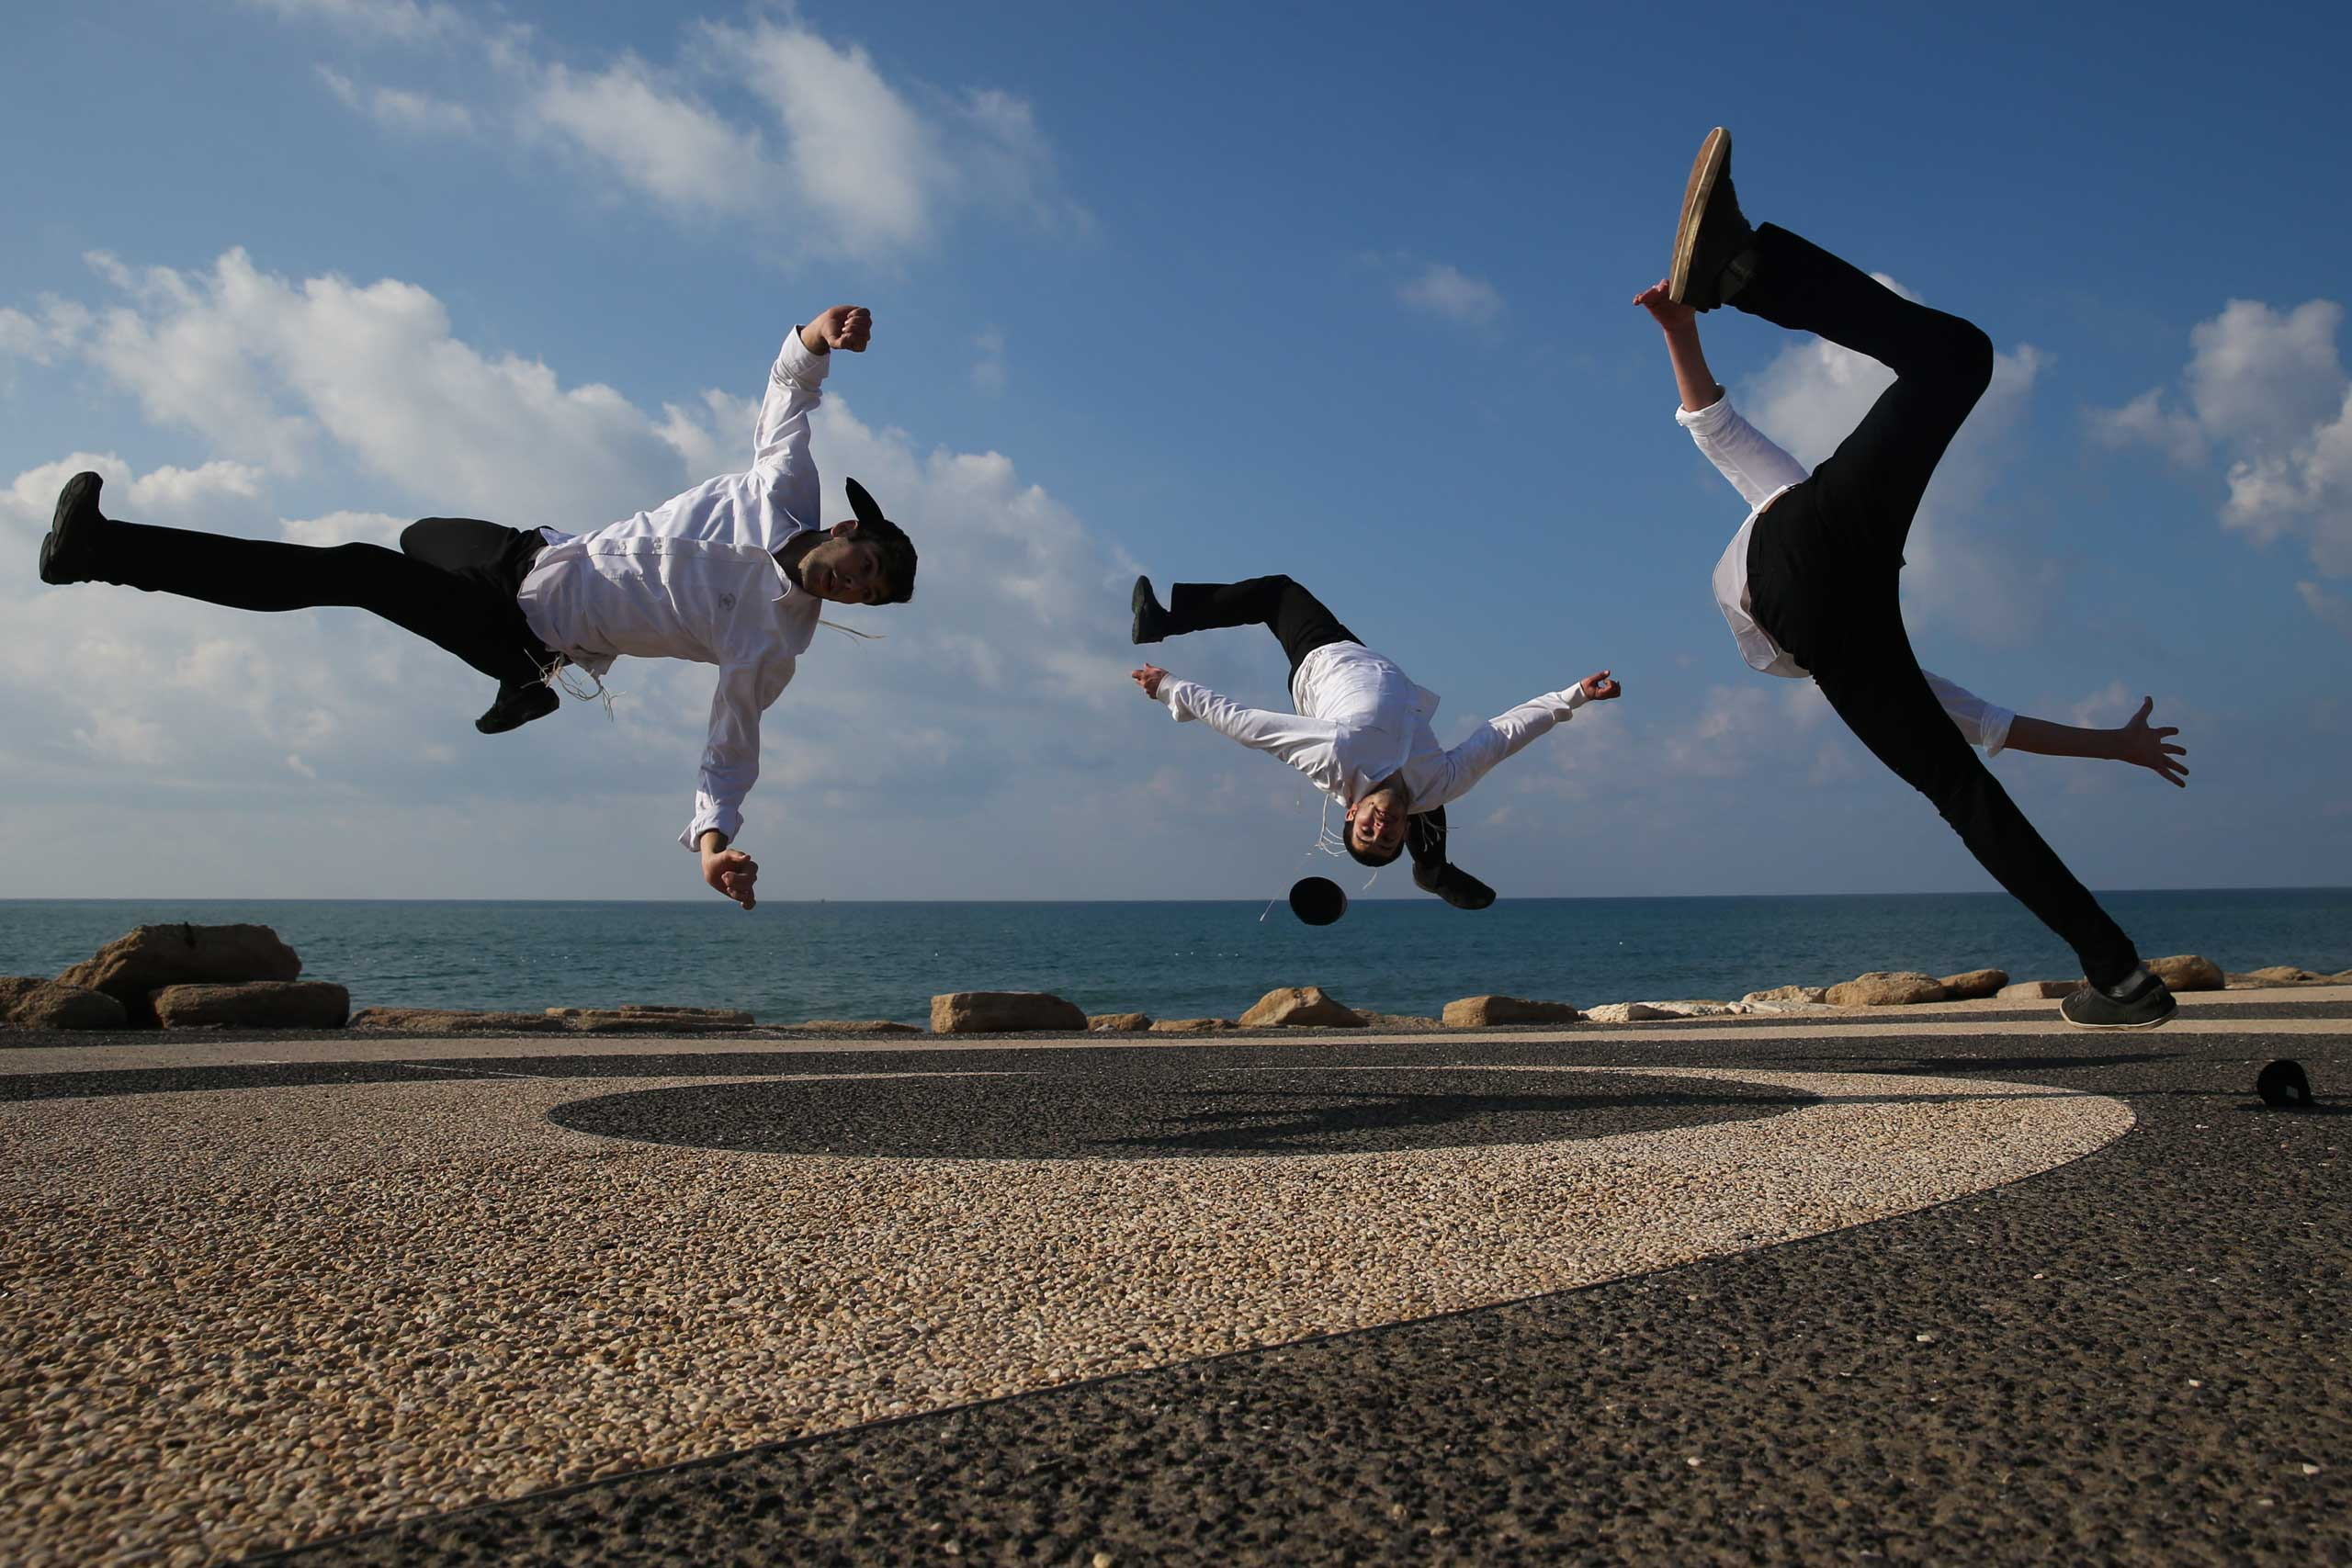 Ultra Orthodox Jews  practice Capoeira, a Brazilian martial art that combines elements of dance, acrobatics and music, near the port of the Israeli Mediterranean city of Tel Aviv-Jaffo on Jan. 18, 2015.